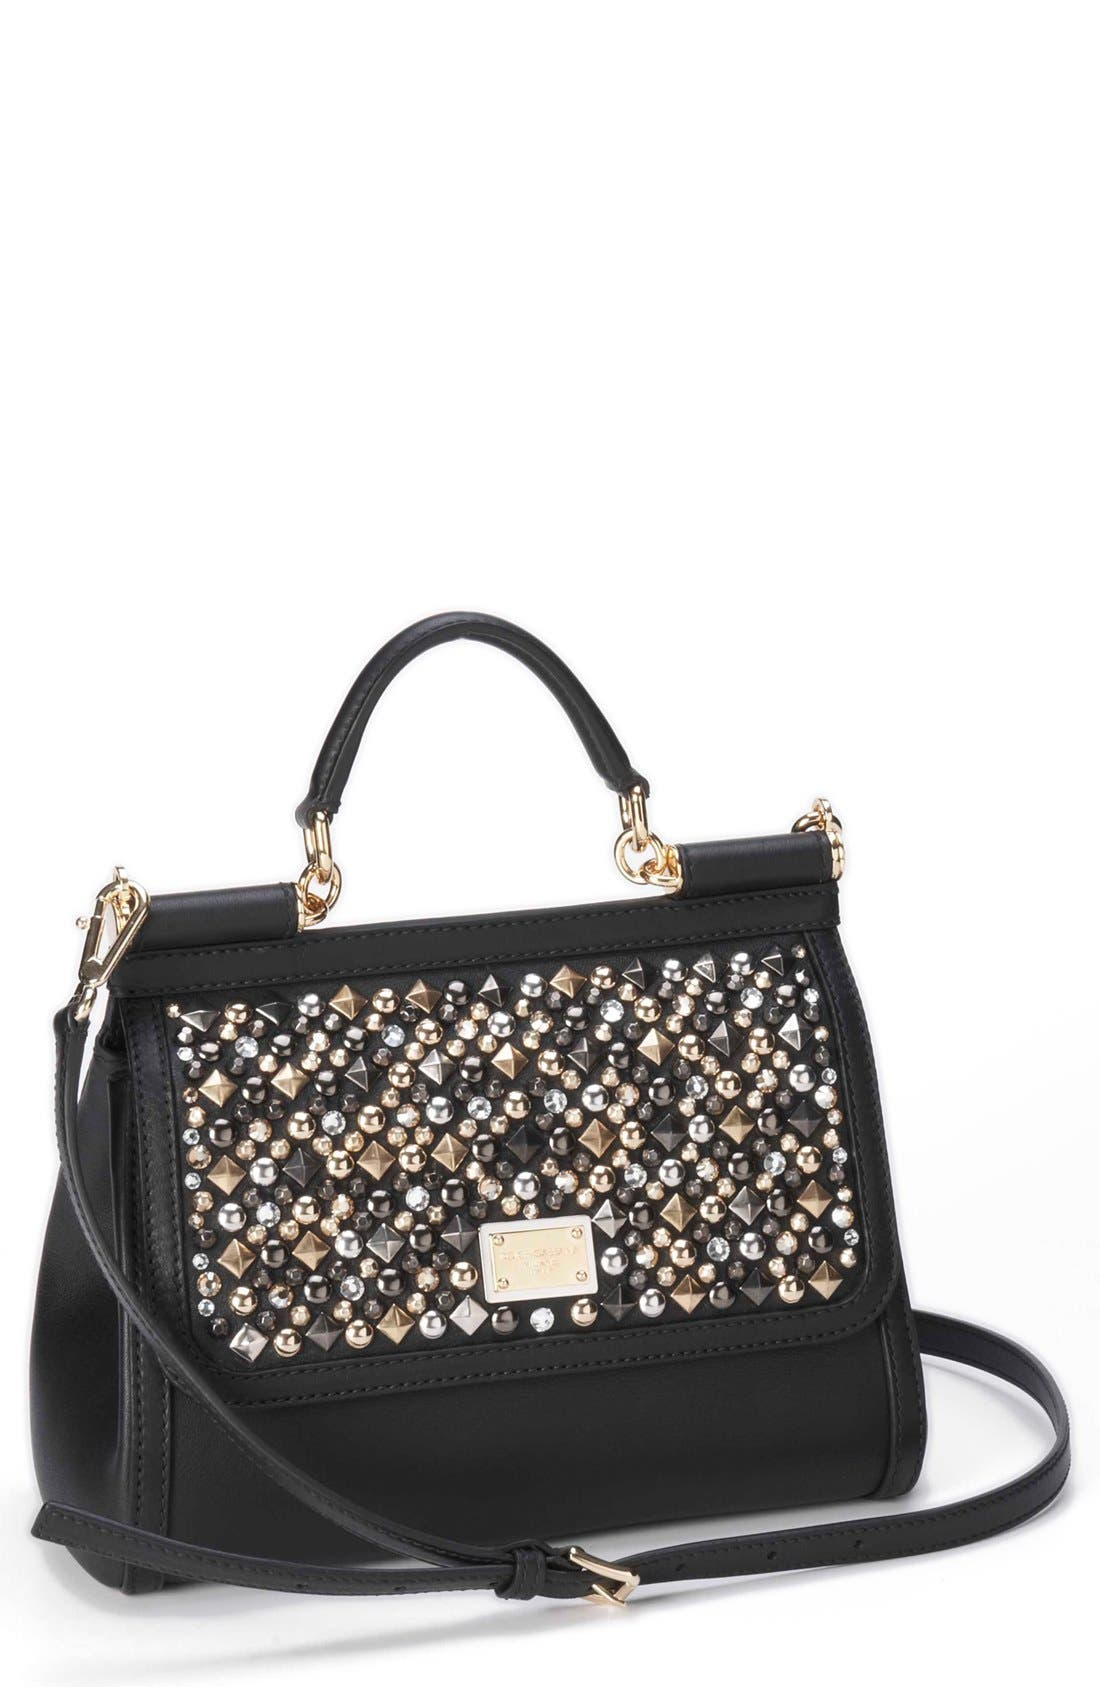 Alternate Image 1 Selected - Dolce&Gabbana 'Miss Sicily - Mini' Studded Top Handle Leather Satchel